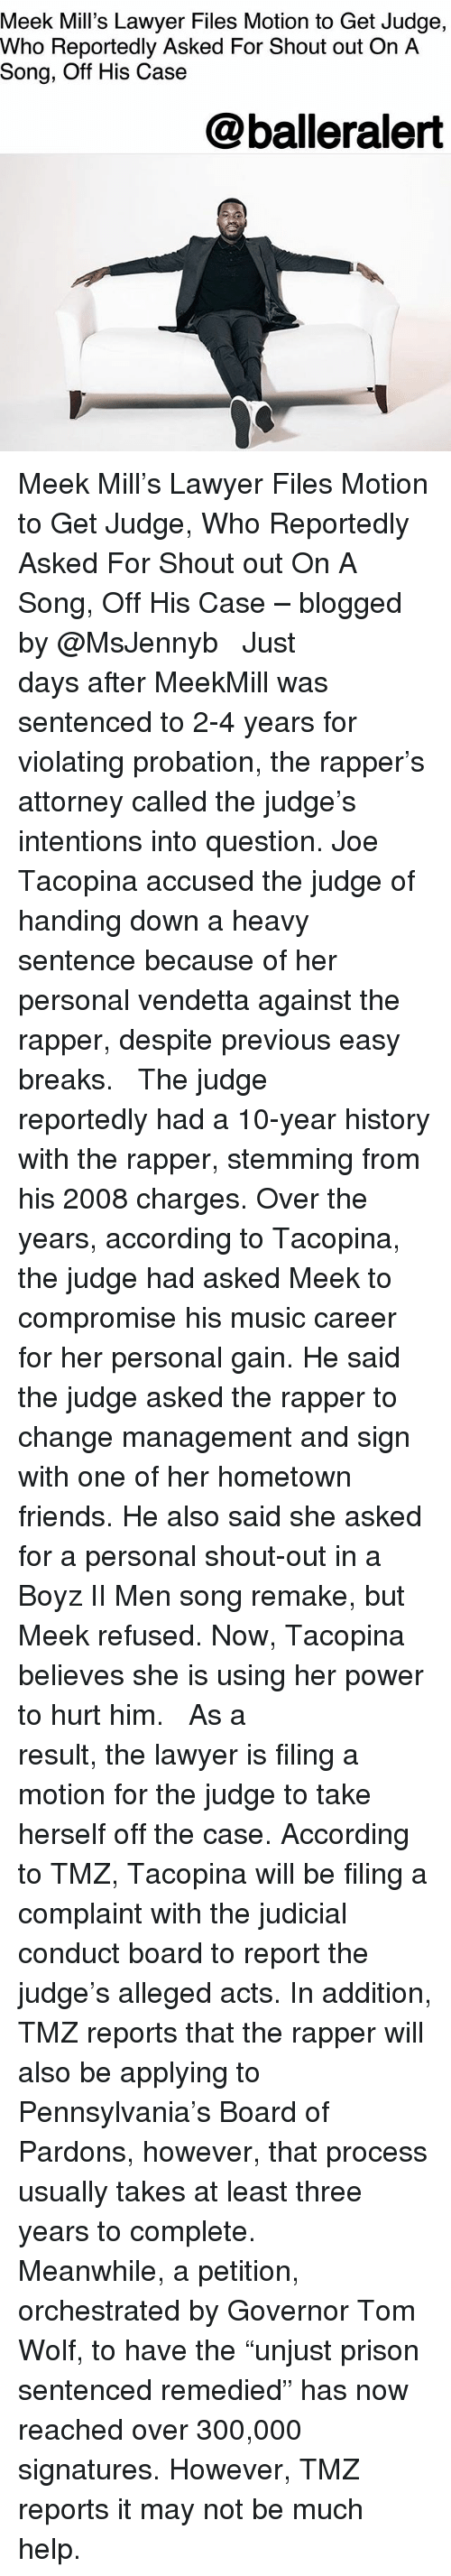 """Friends, Lawyer, and Meek Mill: Meek Mill's Lawyer Files Motion to Get Judge,  Who Reportedly Asked For Shout out On A  Song, Off His Case  @balleralert Meek Mill's Lawyer Files Motion to Get Judge, Who Reportedly Asked For Shout out On A Song, Off His Case – blogged by @MsJennyb ⠀⠀⠀⠀⠀⠀⠀ ⠀⠀⠀⠀⠀⠀⠀ Just days after MeekMill was sentenced to 2-4 years for violating probation, the rapper's attorney called the judge's intentions into question. Joe Tacopina accused the judge of handing down a heavy sentence because of her personal vendetta against the rapper, despite previous easy breaks. ⠀⠀⠀⠀⠀⠀⠀ ⠀⠀⠀⠀⠀⠀⠀ The judge reportedly had a 10-year history with the rapper, stemming from his 2008 charges. Over the years, according to Tacopina, the judge had asked Meek to compromise his music career for her personal gain. He said the judge asked the rapper to change management and sign with one of her hometown friends. He also said she asked for a personal shout-out in a Boyz II Men song remake, but Meek refused. Now, Tacopina believes she is using her power to hurt him. ⠀⠀⠀⠀⠀⠀⠀ ⠀⠀⠀⠀⠀⠀⠀ As a result, the lawyer is filing a motion for the judge to take herself off the case. According to TMZ, Tacopina will be filing a complaint with the judicial conduct board to report the judge's alleged acts. In addition, TMZ reports that the rapper will also be applying to Pennsylvania's Board of Pardons, however, that process usually takes at least three years to complete. ⠀⠀⠀⠀⠀⠀⠀ ⠀⠀⠀⠀⠀⠀⠀ Meanwhile, a petition, orchestrated by Governor Tom Wolf, to have the """"unjust prison sentenced remedied"""" has now reached over 300,000 signatures. However, TMZ reports it may not be much help."""